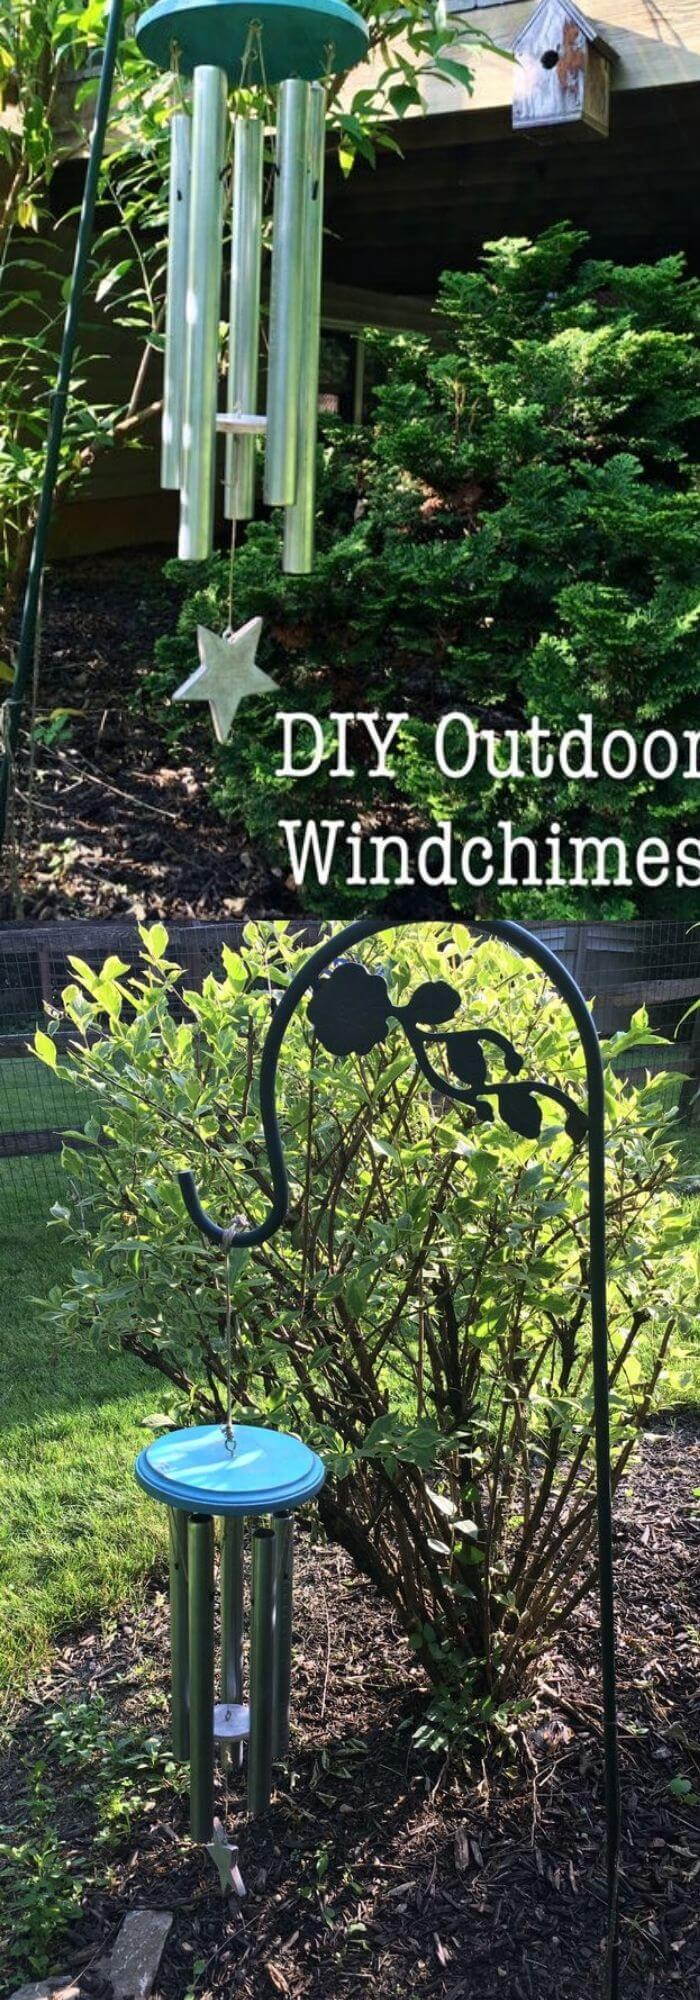 Backyard DIY Wind Chime